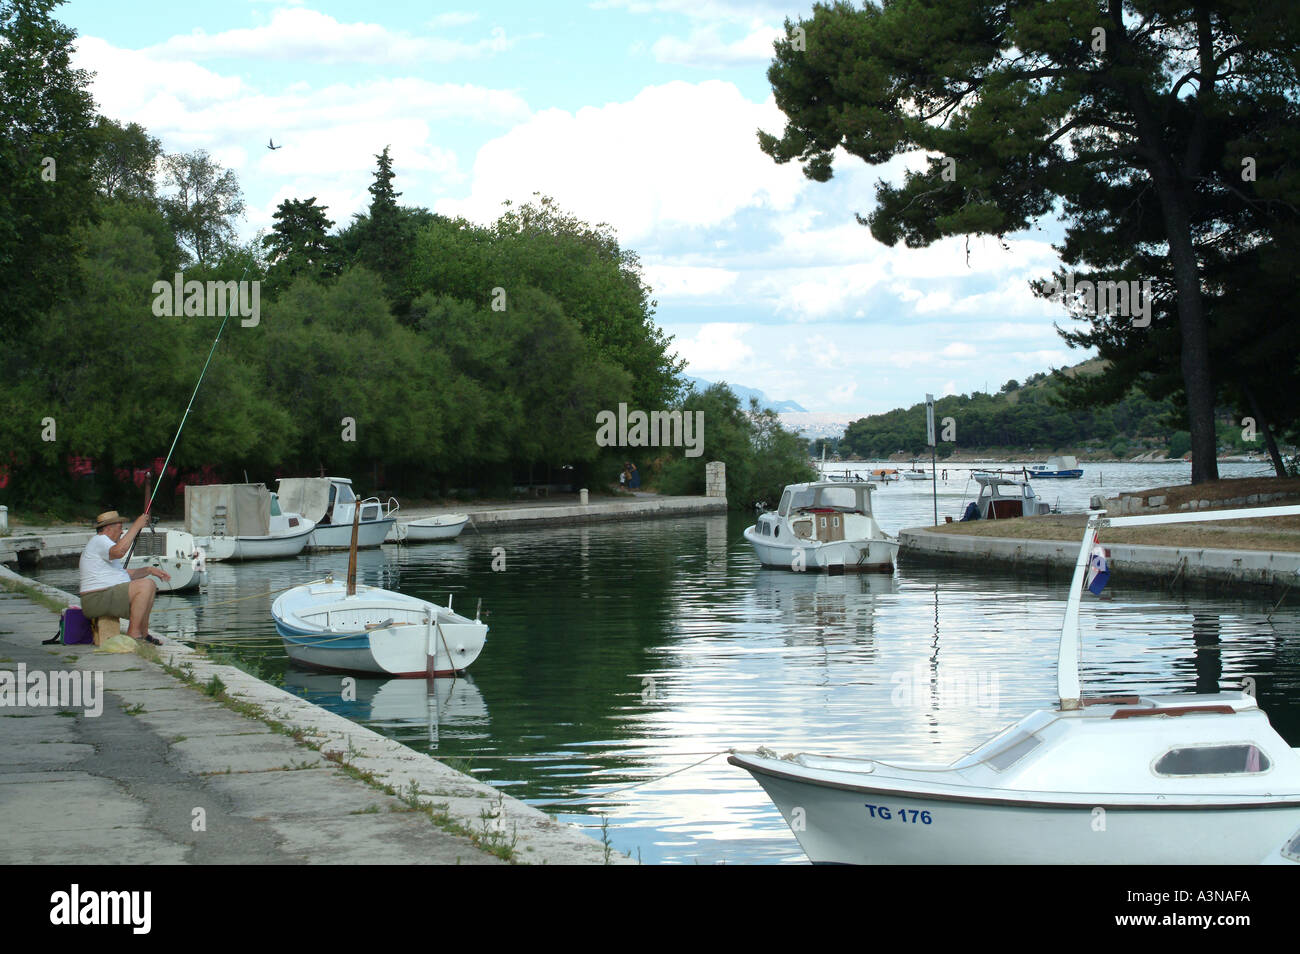 Boats Tied Up with Older Man Fishing in Canal Zone in Trogir Croatia with Mountains in Background - Stock Image